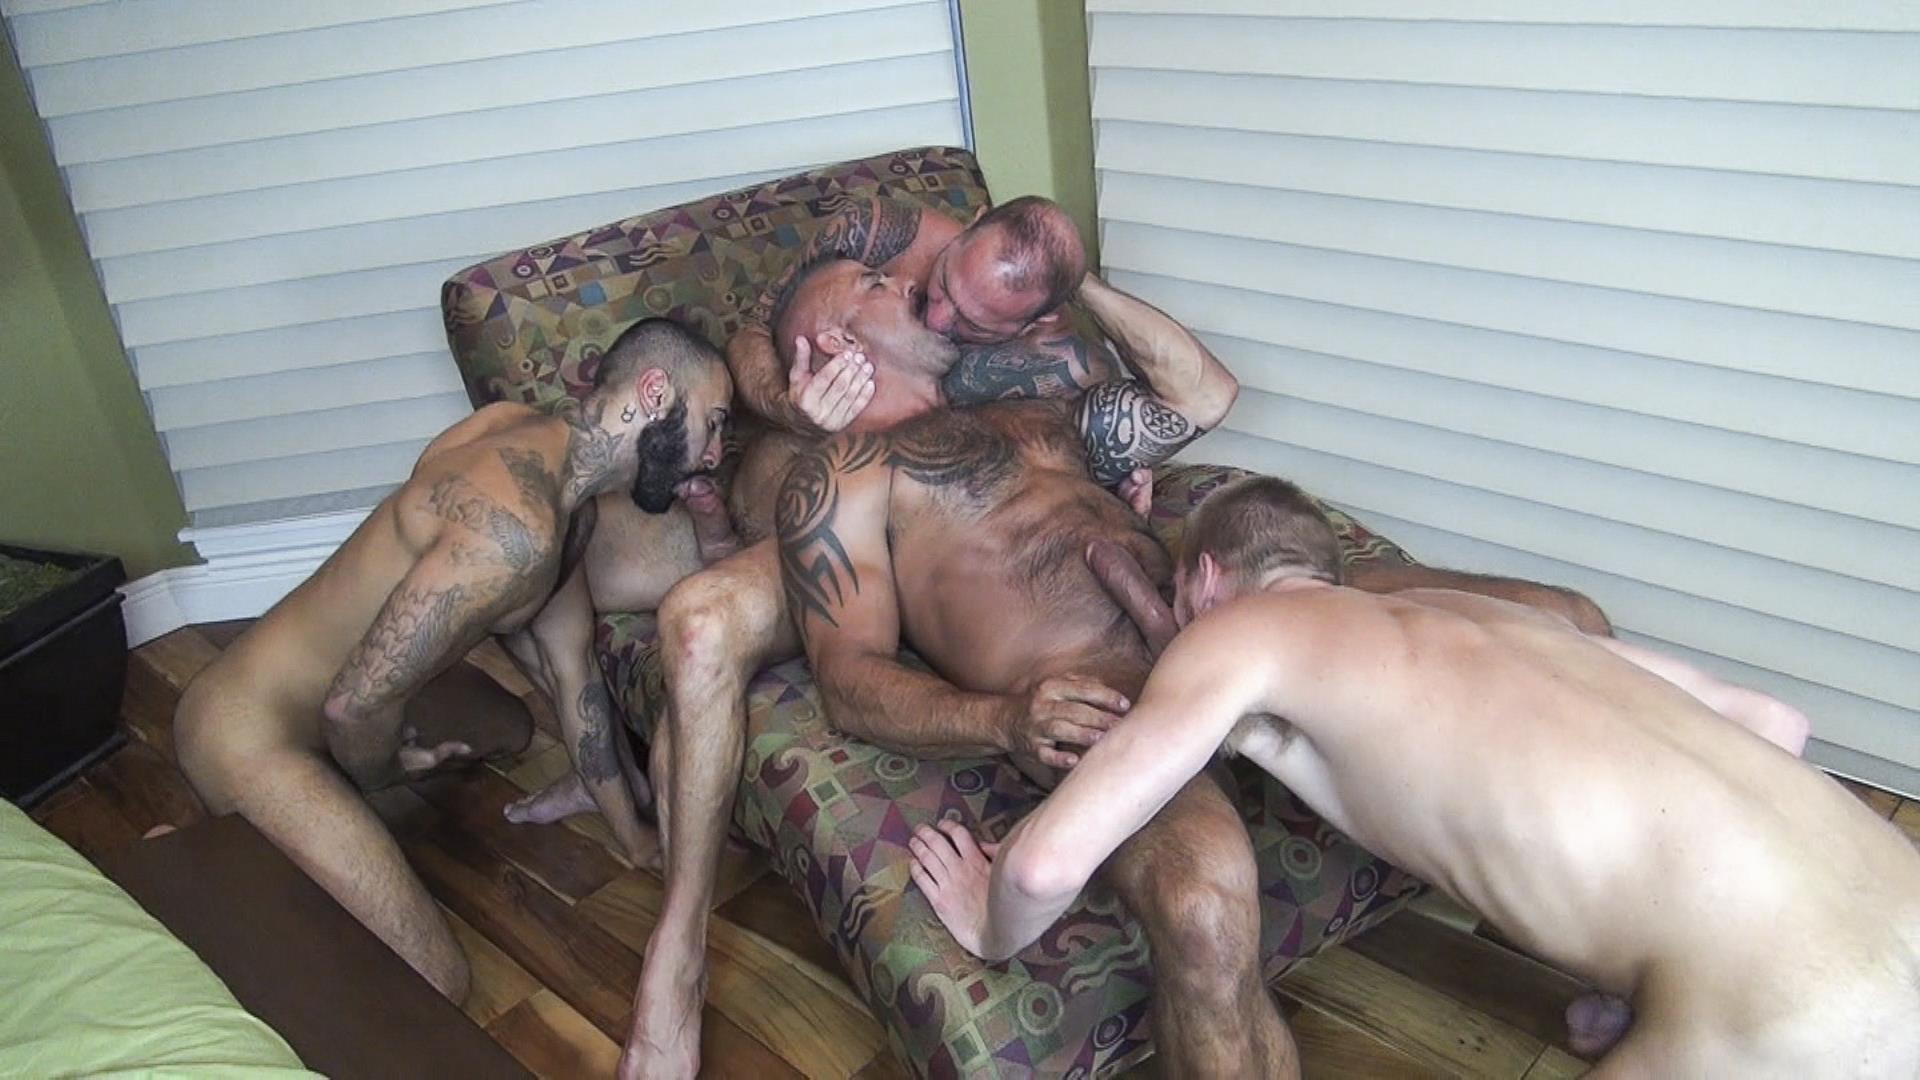 Raw Fuck Club Vic Rocco and Rikk York and Billy Warren and Job Galt Bareback Daddy Amateur Gay Porn 08 Four Hairy Muscle Daddies In A Bareback Fuck Fest Orgy